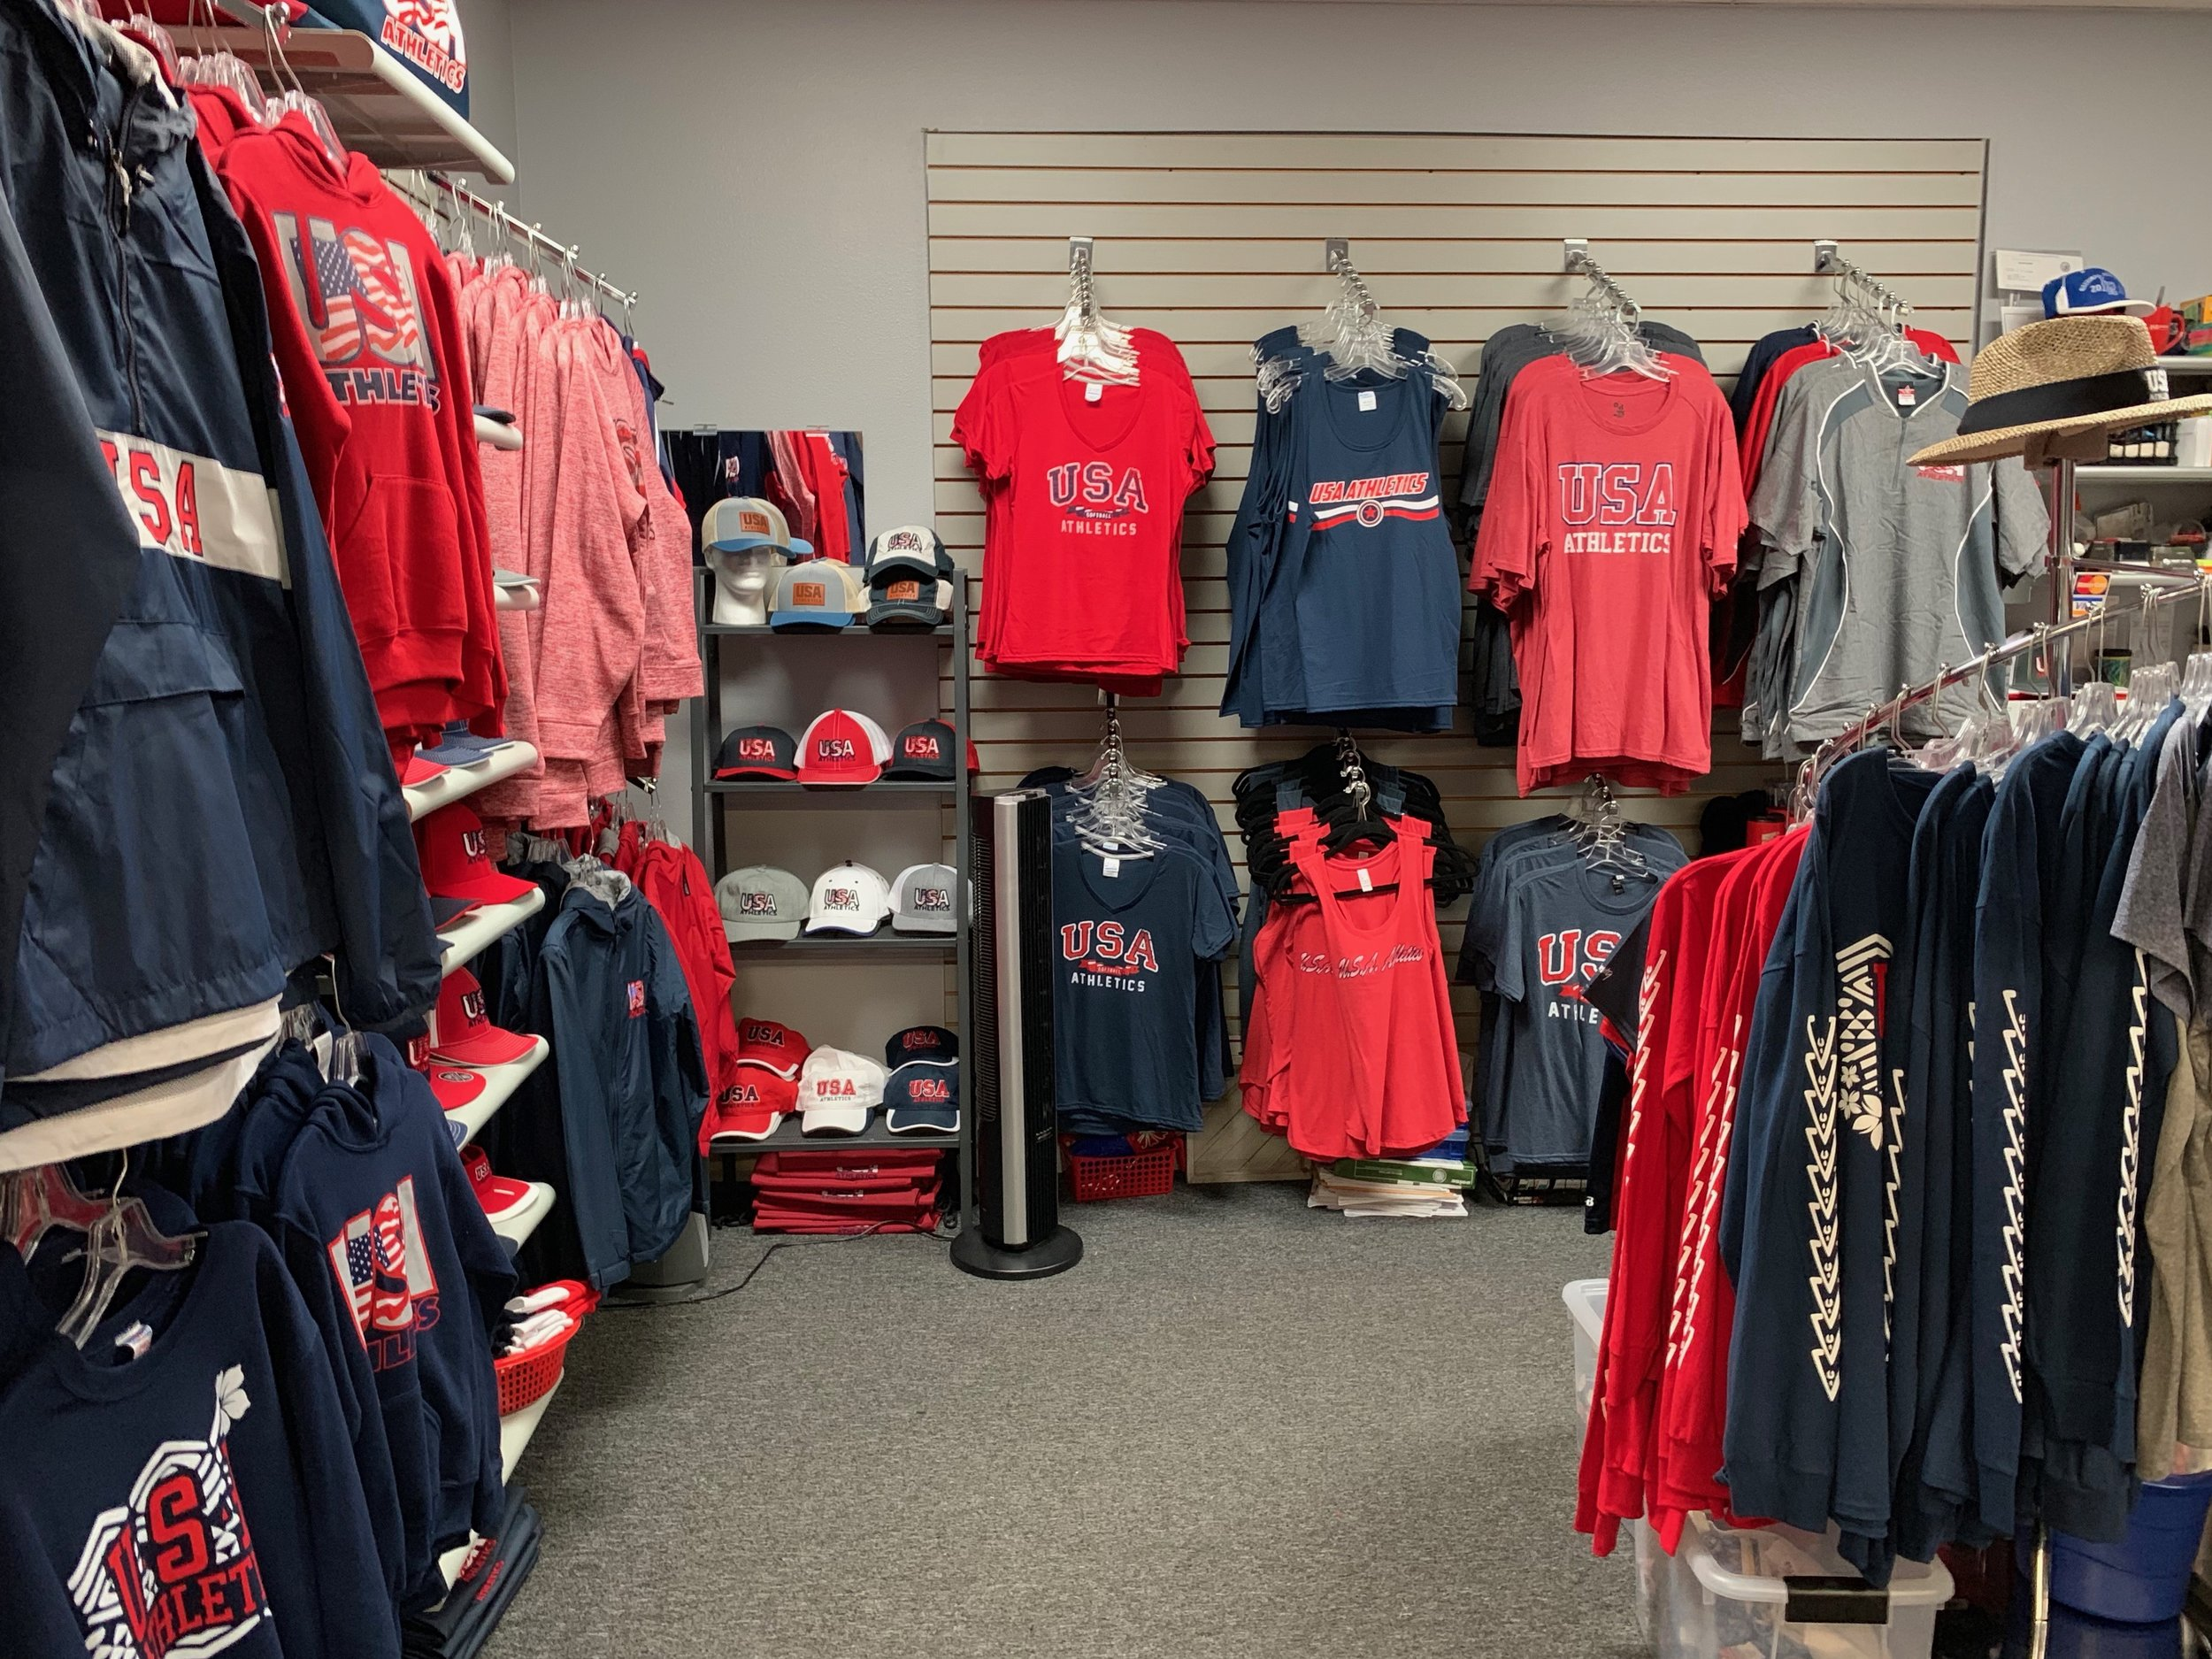 J&L Designs' shop in Signal Hill, CA featuring a ton of USA Athletics merch